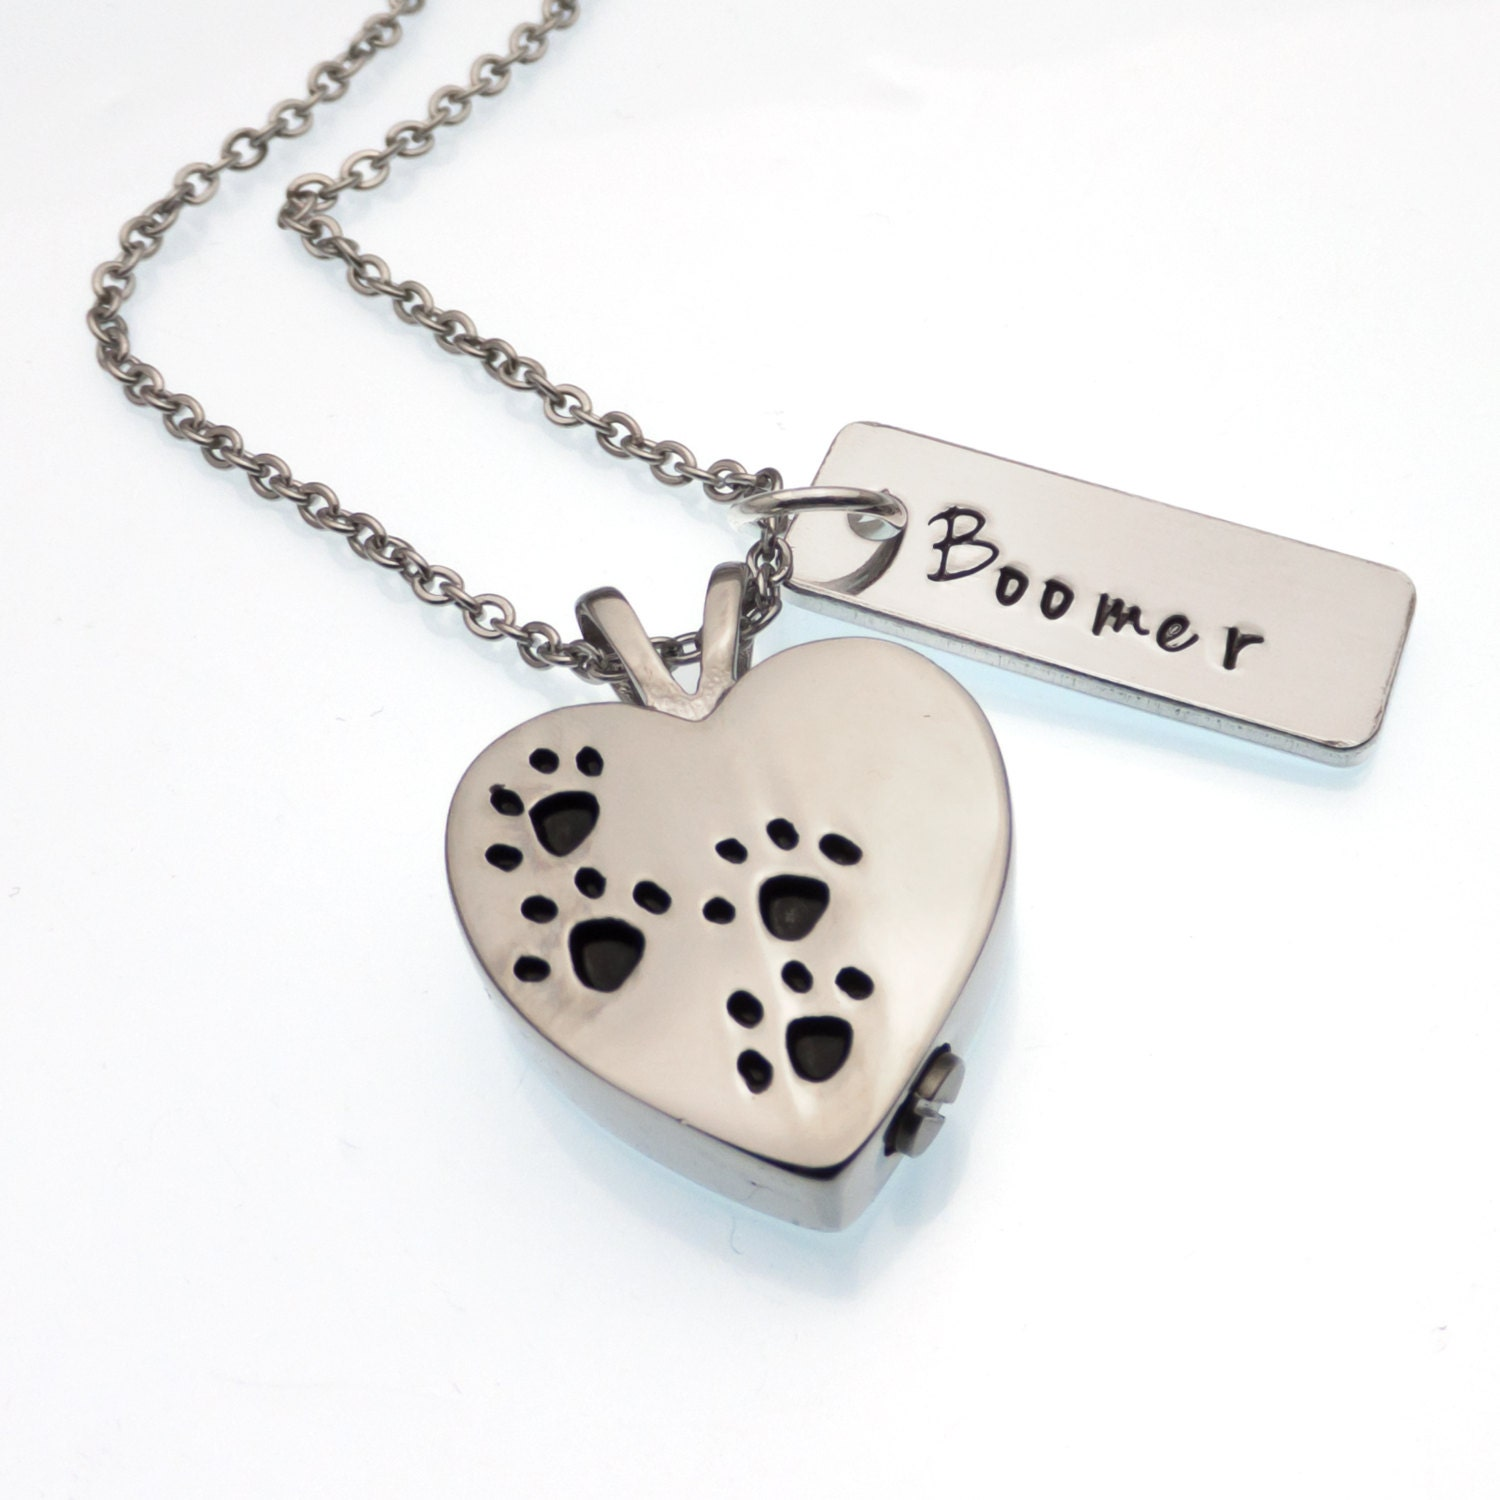 Heart pet urn necklace cremation jewelry paw print for Cremation jewelry for pets ashes